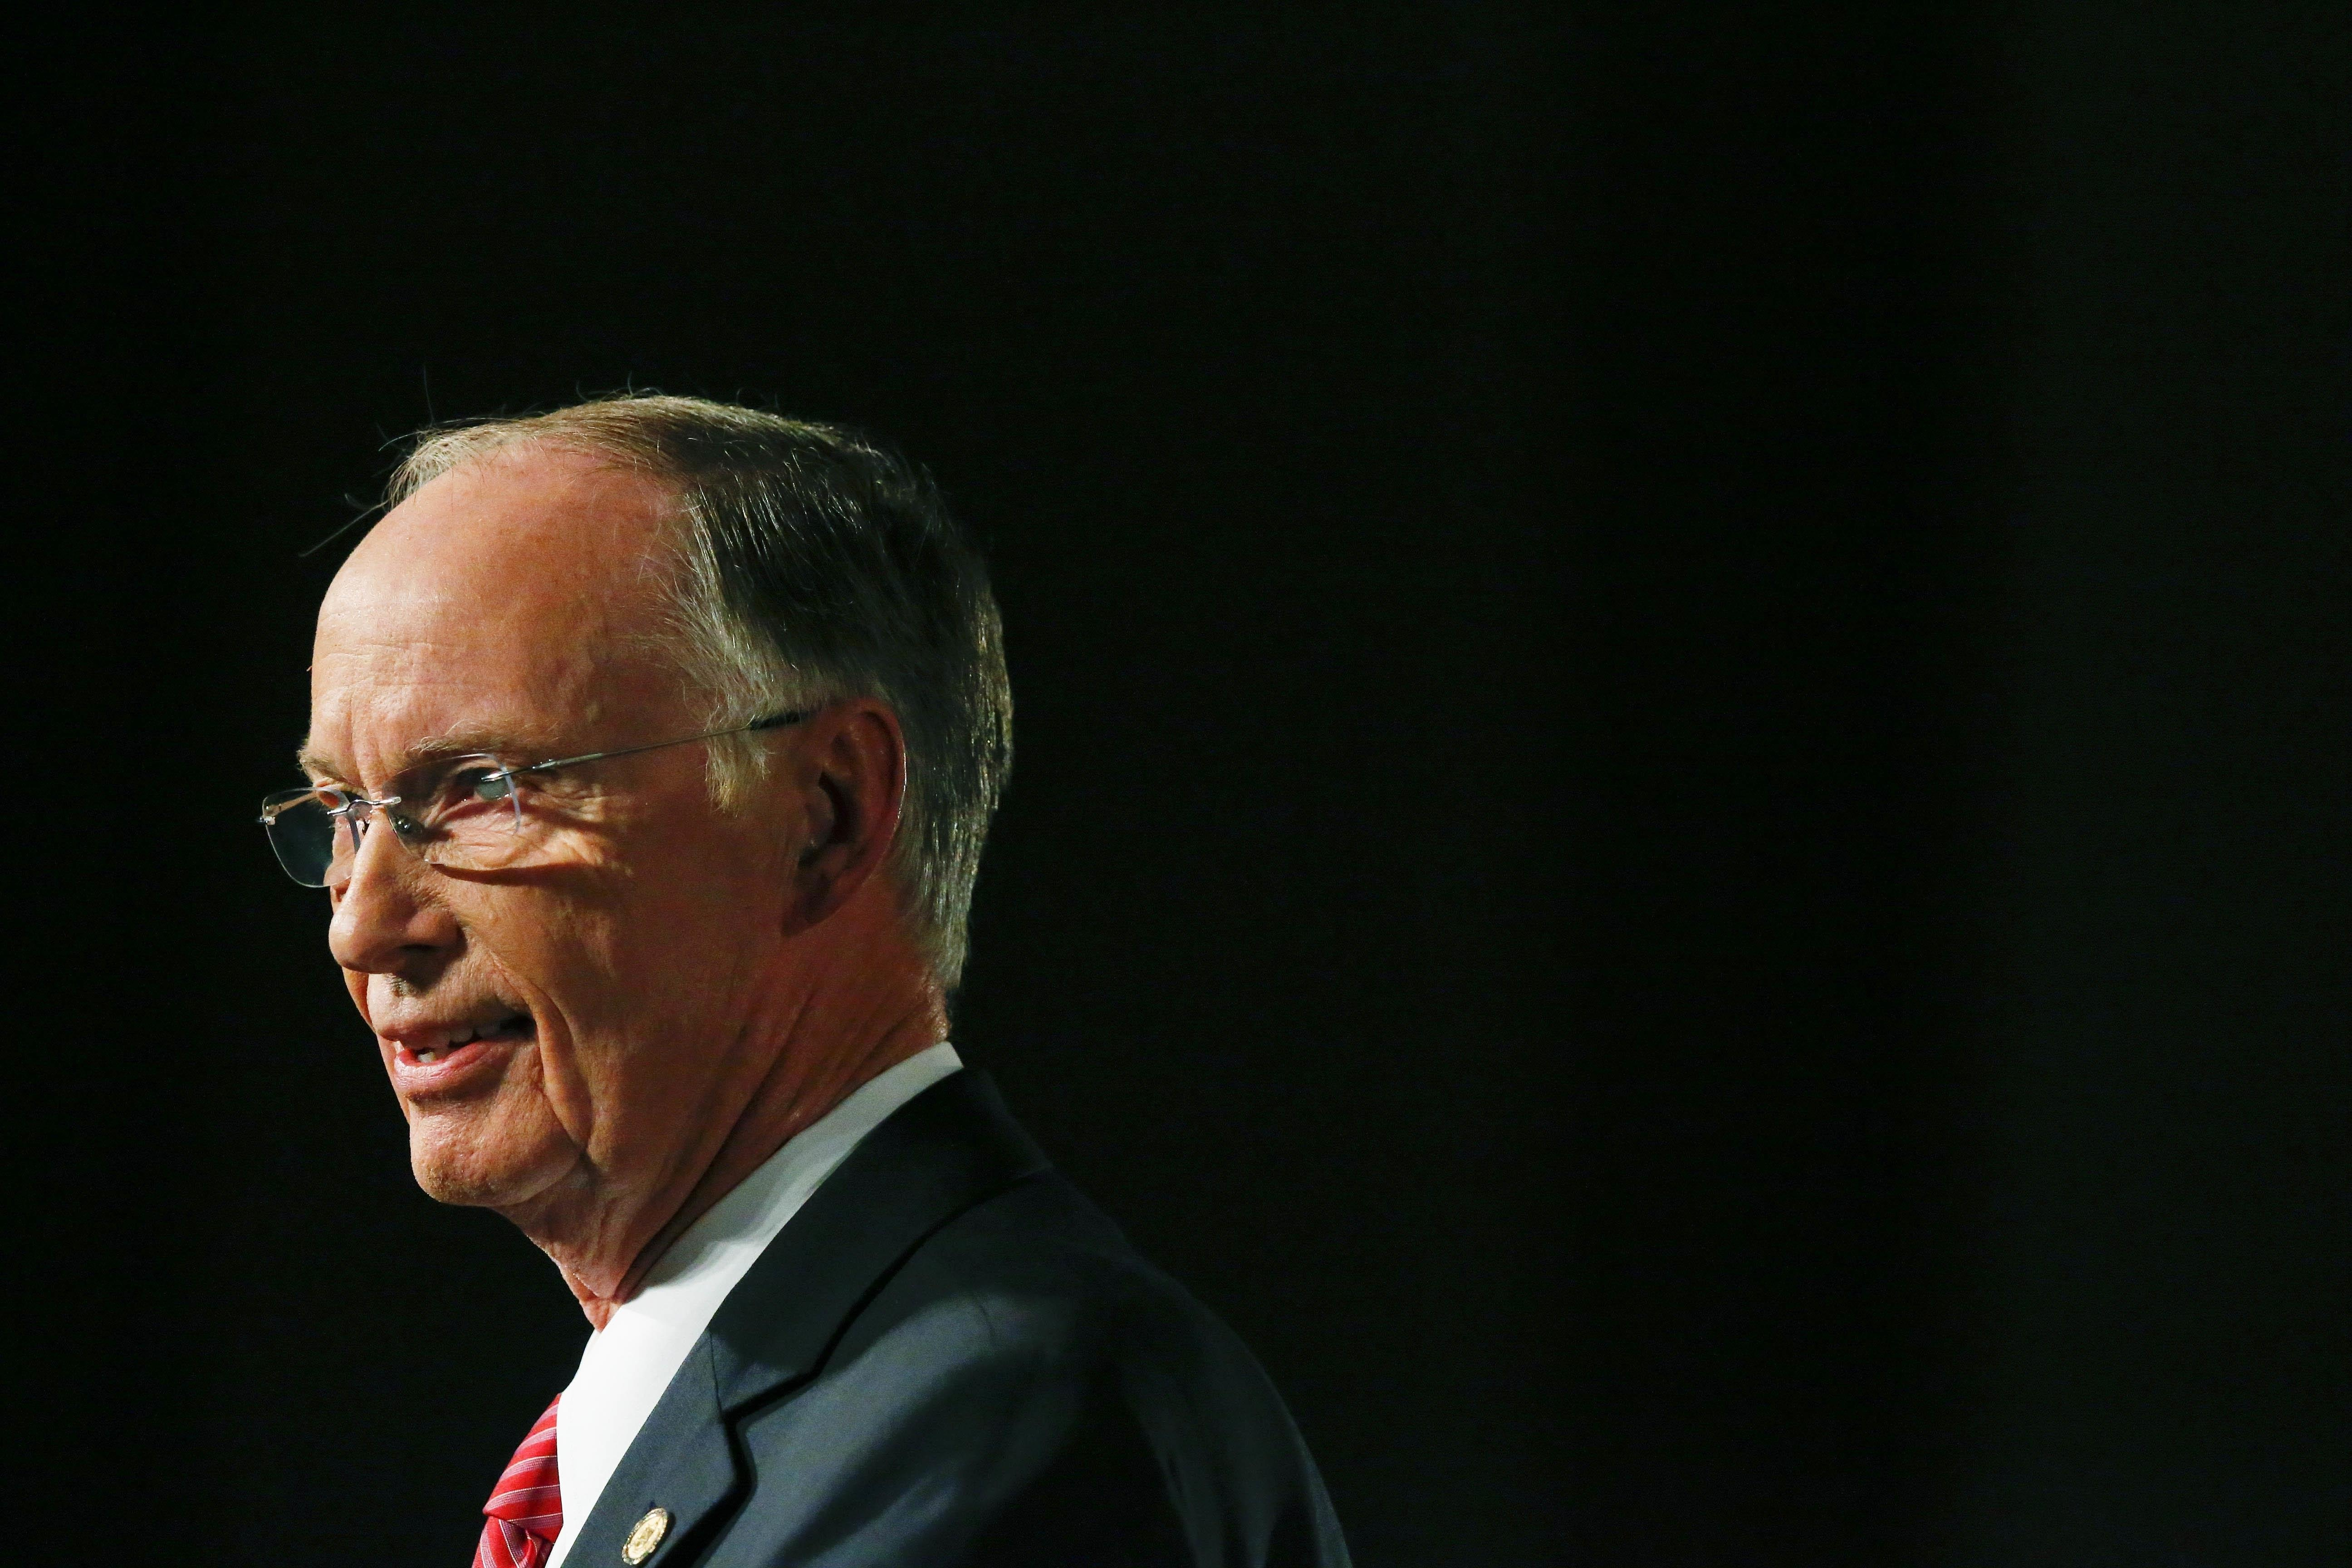 Alabama governor faces impeachment hearings after court ruling (4.20/12)